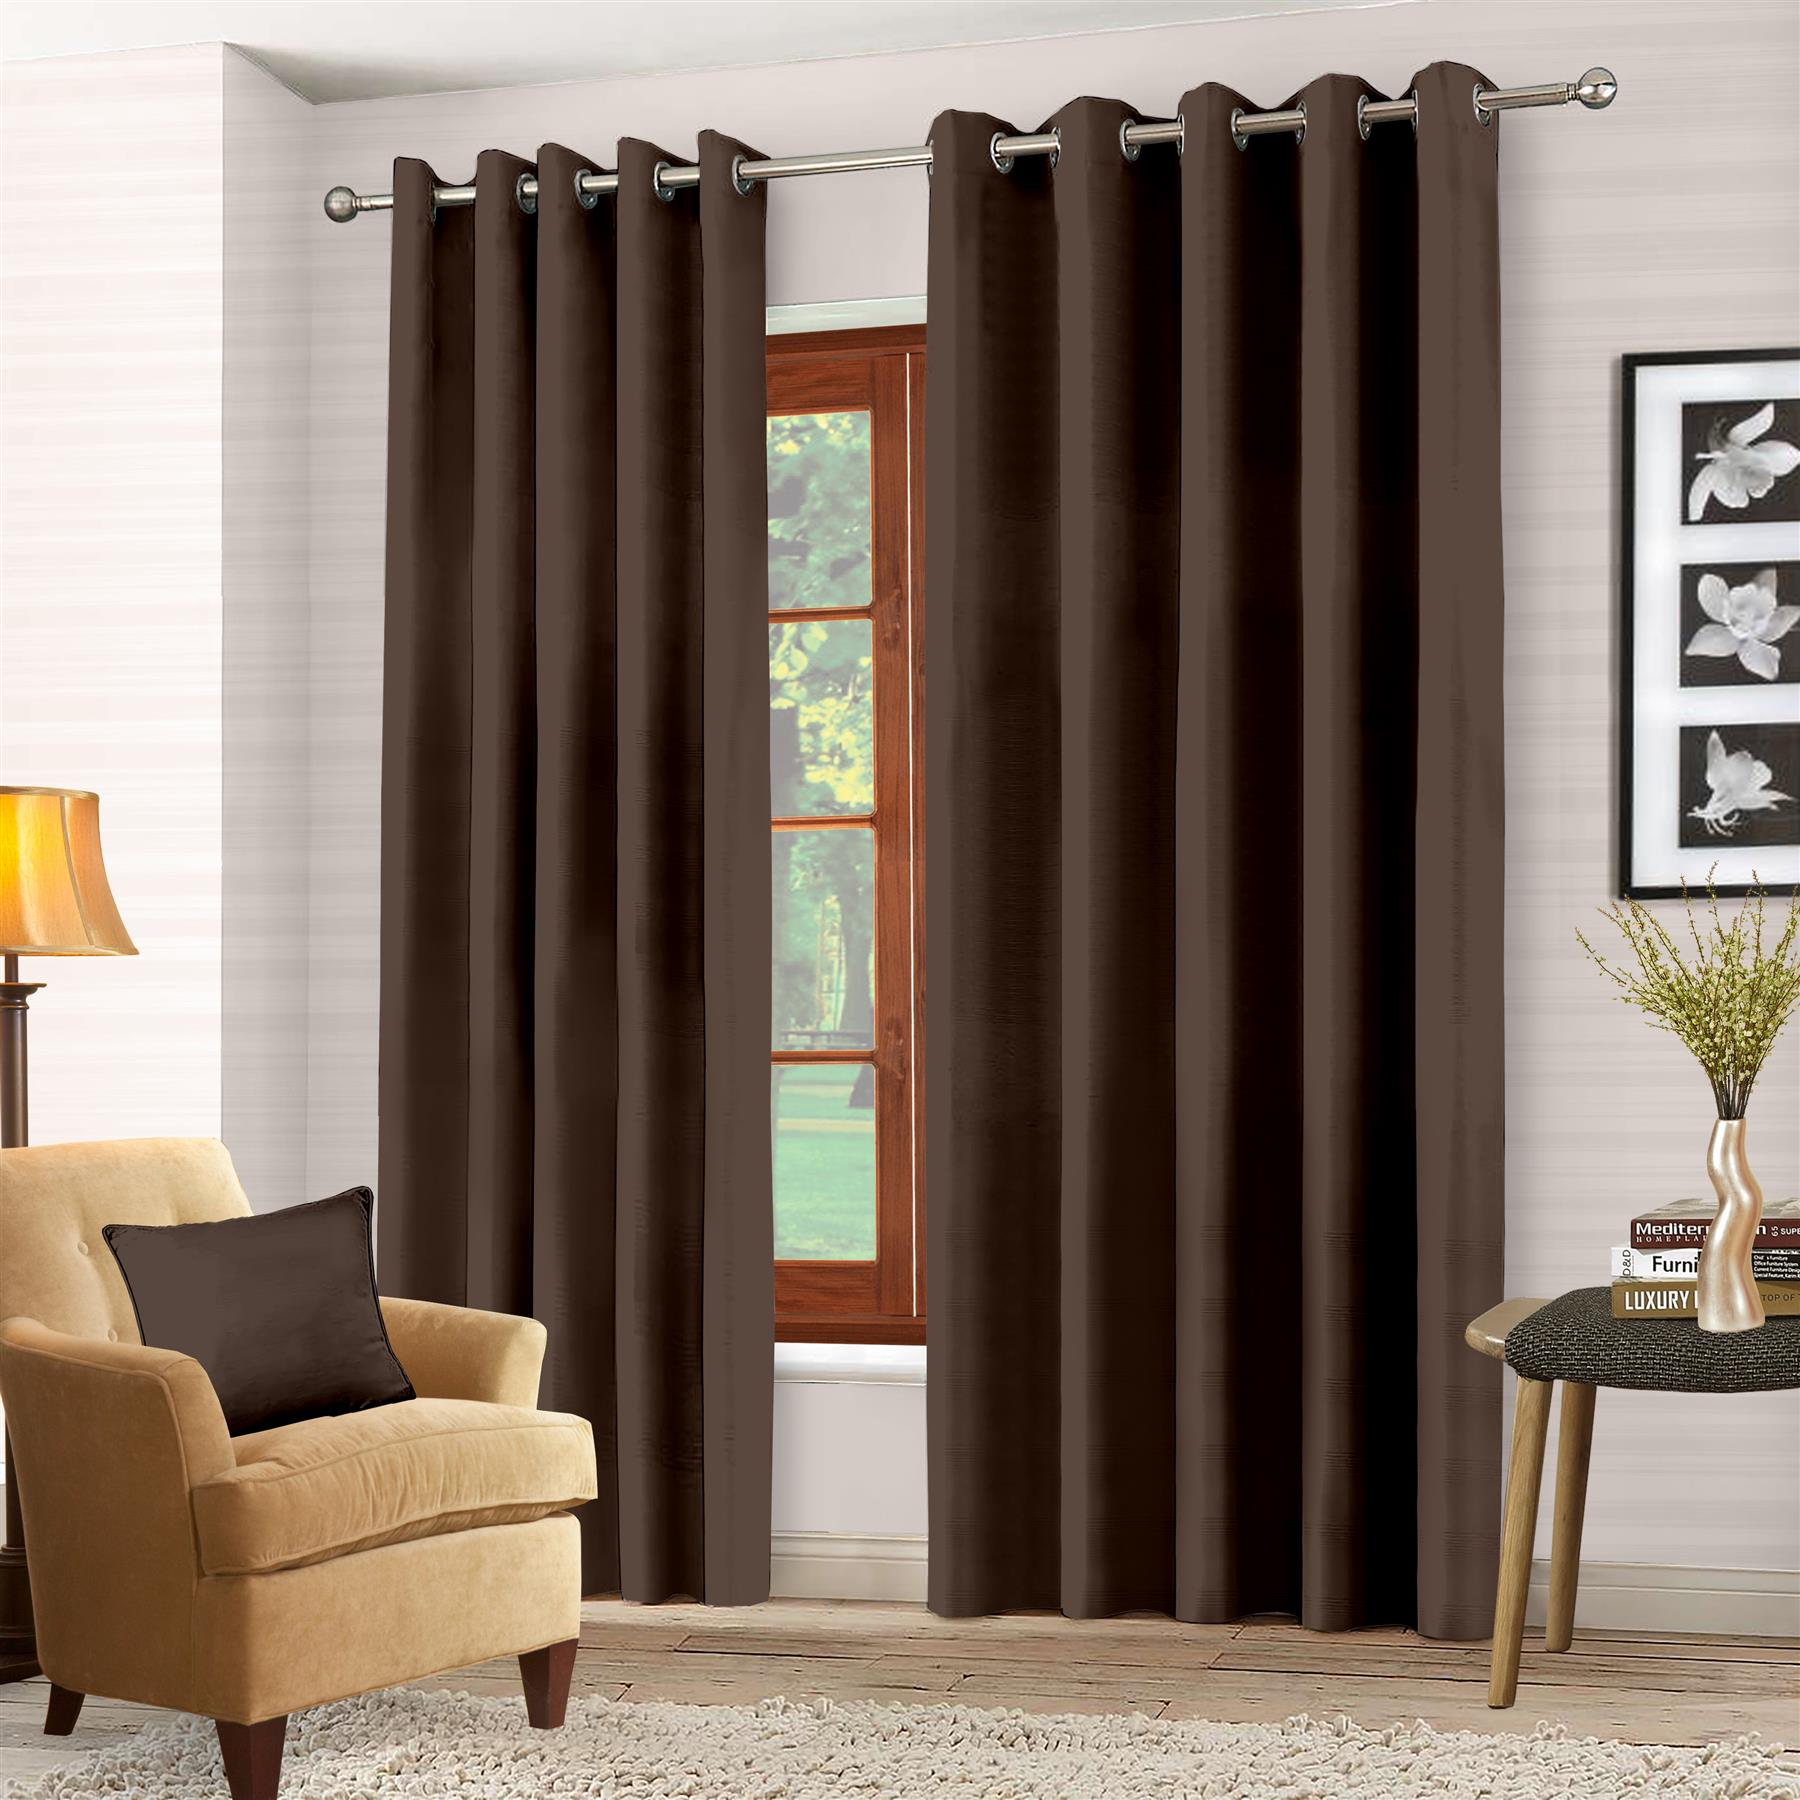 Luxury-Thermal-Blackout-Eyelet-Ring-Top-Curtains-Pair-with-tie-backs thumbnail 11